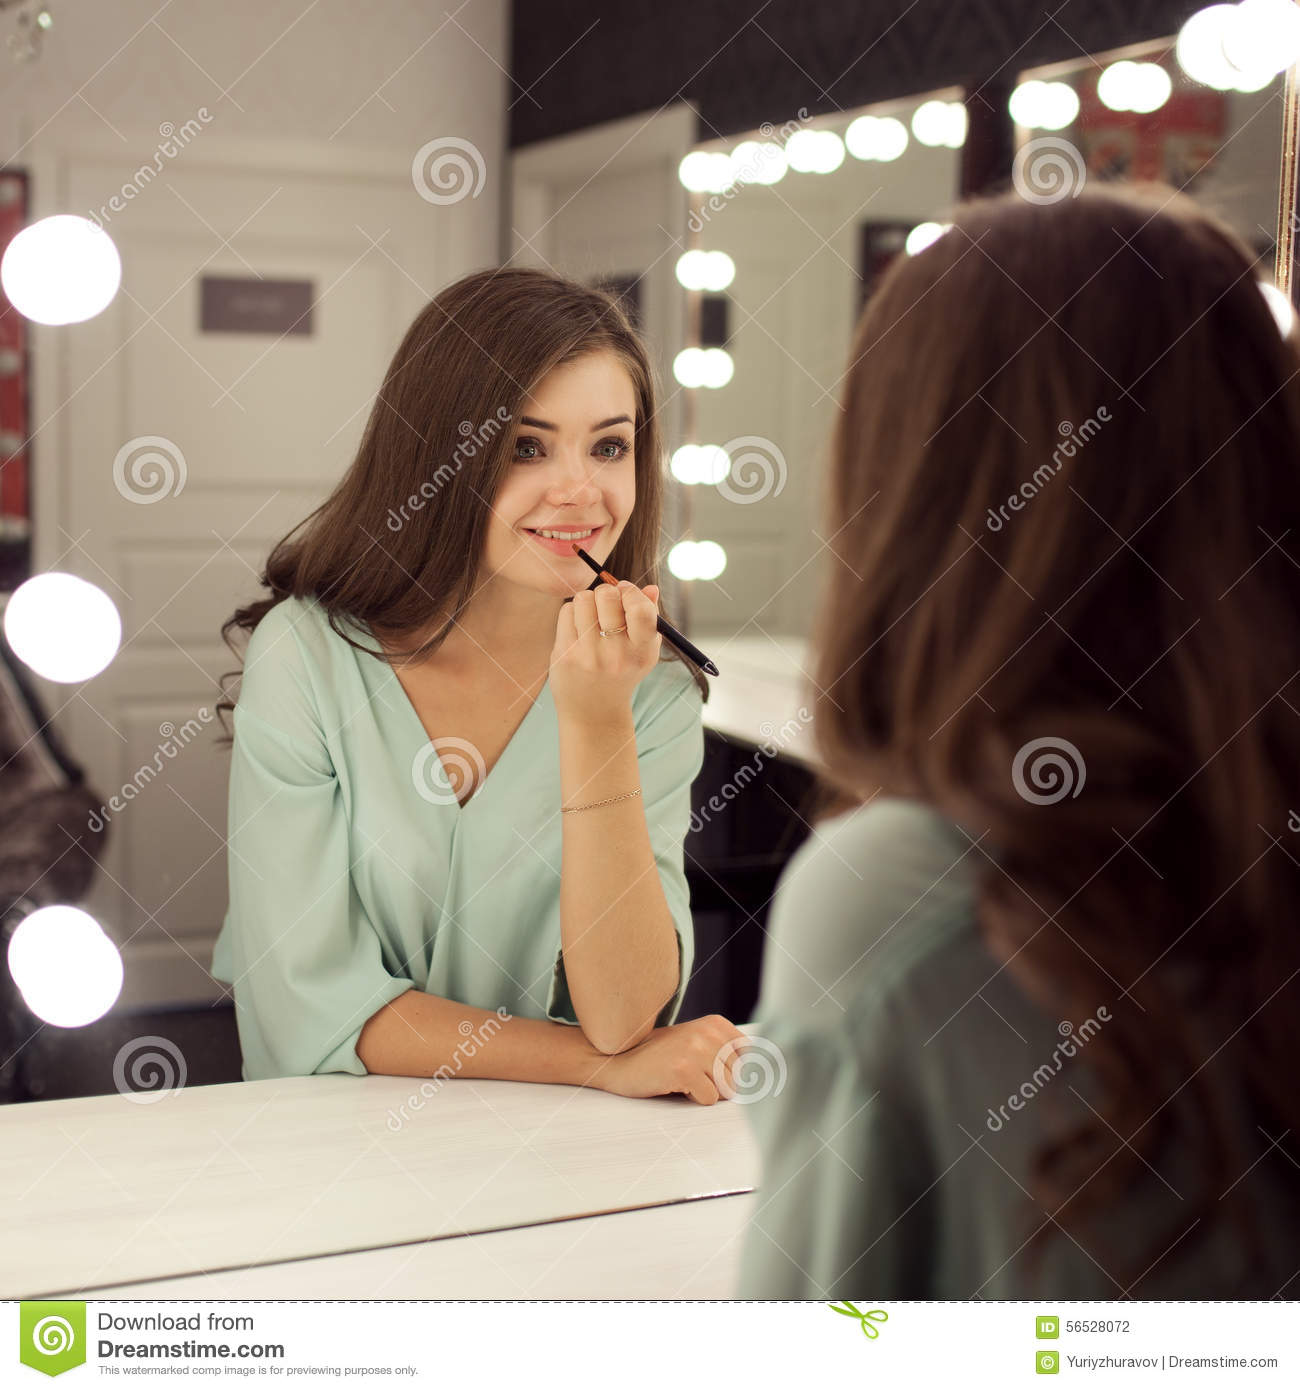 Young Pretty Woman With Make Up And Reflection In Dressing